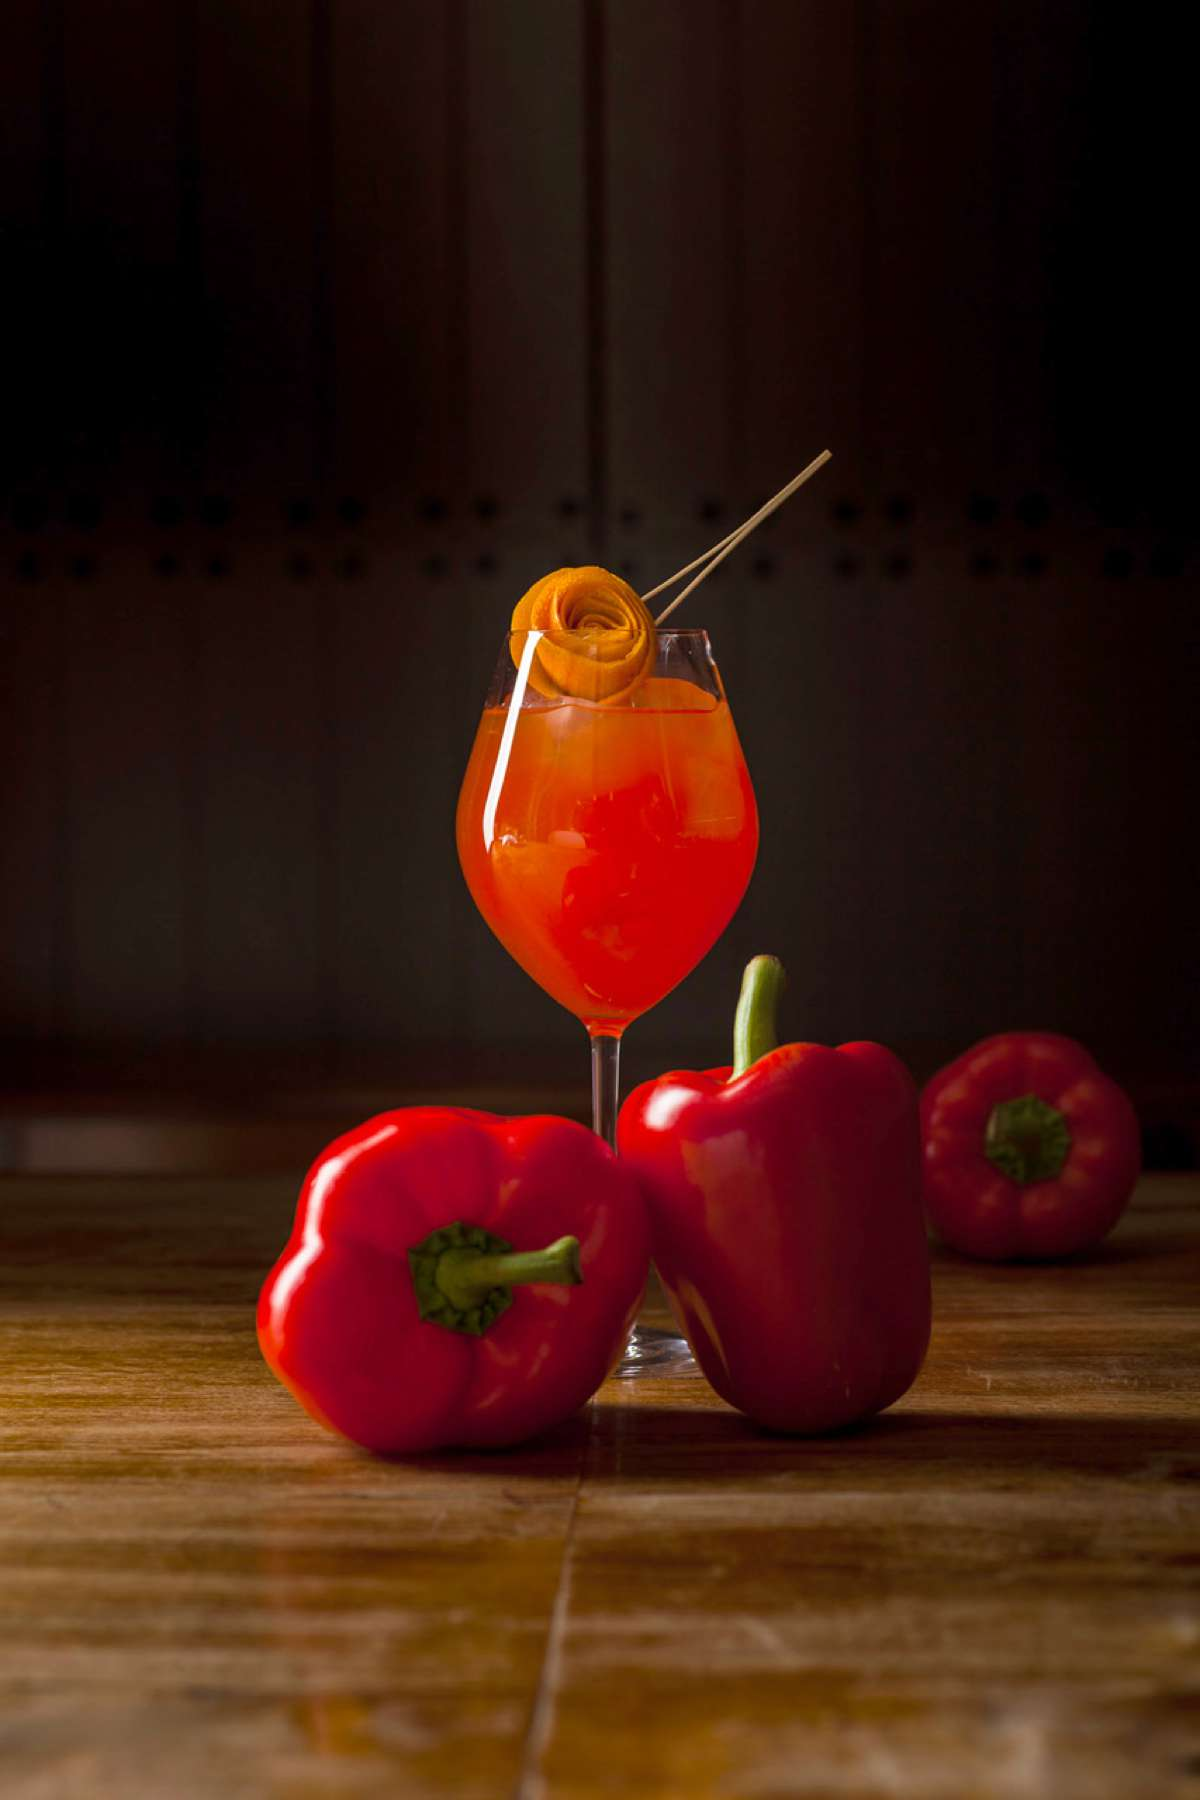 Garden Spritz with Roasted red peppers, wild elderflower and Verjus